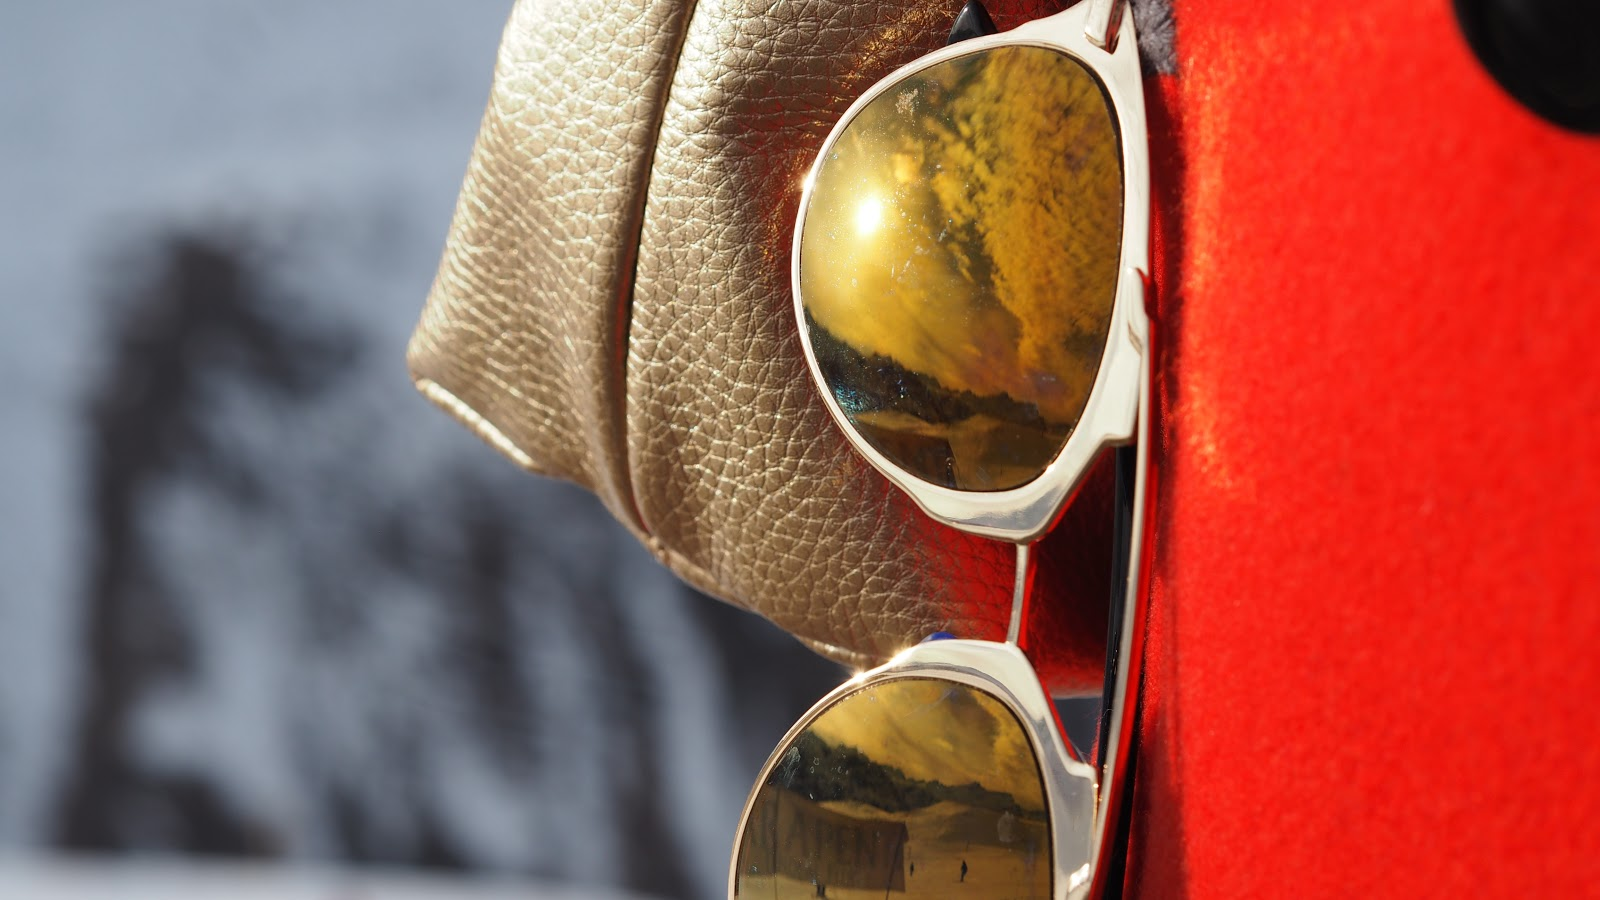 Sunglasses and gold bag against red coat, Val d'Isere, France